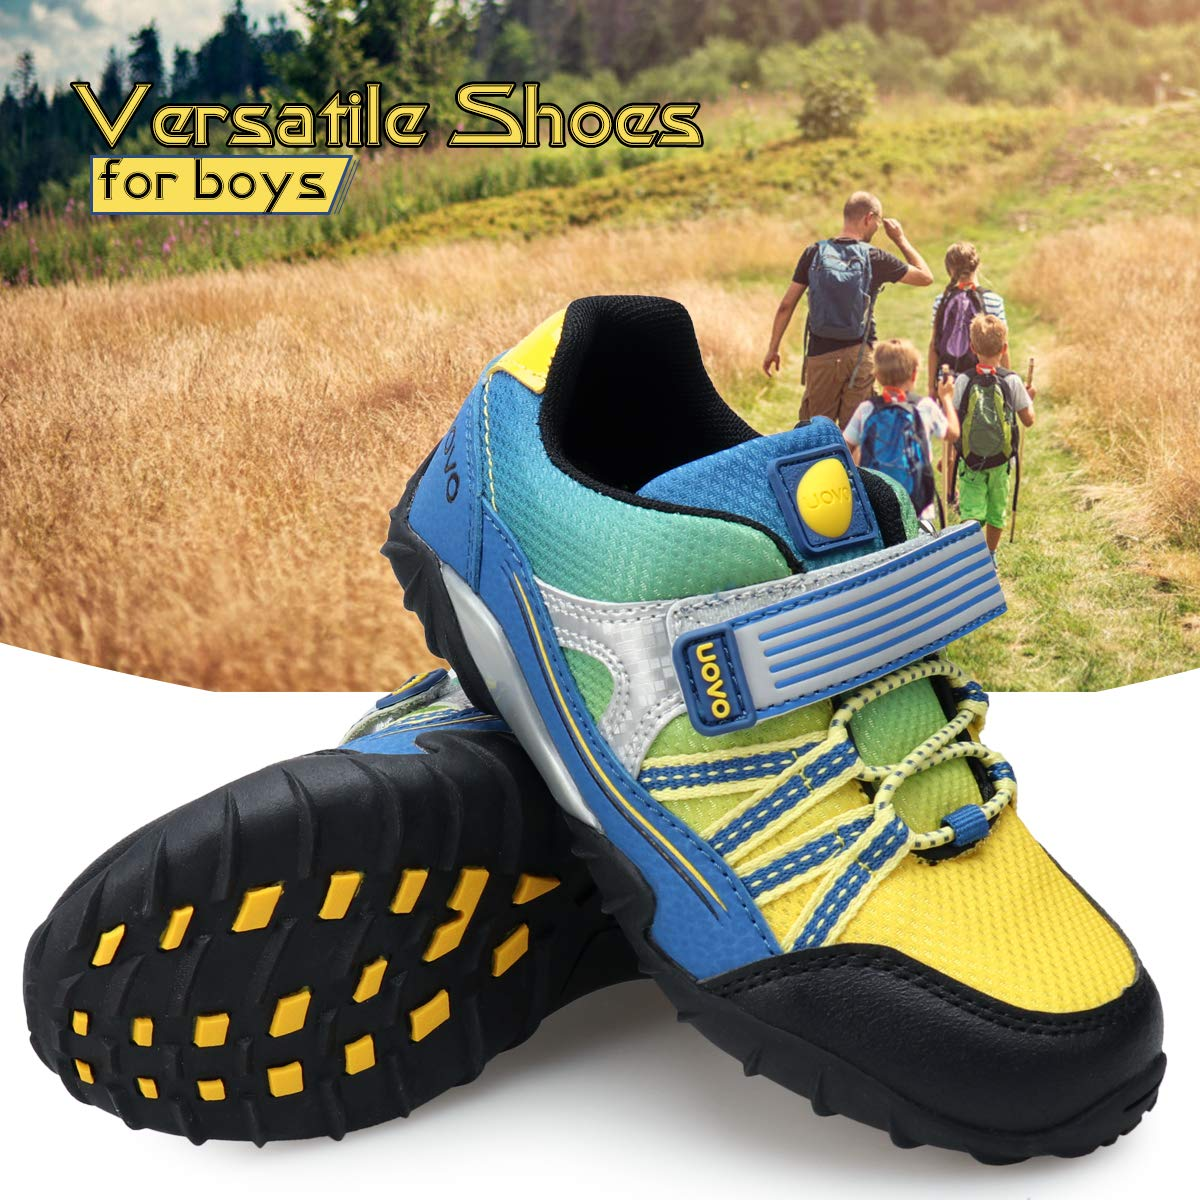 UOVO Little Boys Shoes Running Sneakers Kids Hiking Athletic Tennis Shoes for Toddler Boys Blue by UOVO (Image #3)